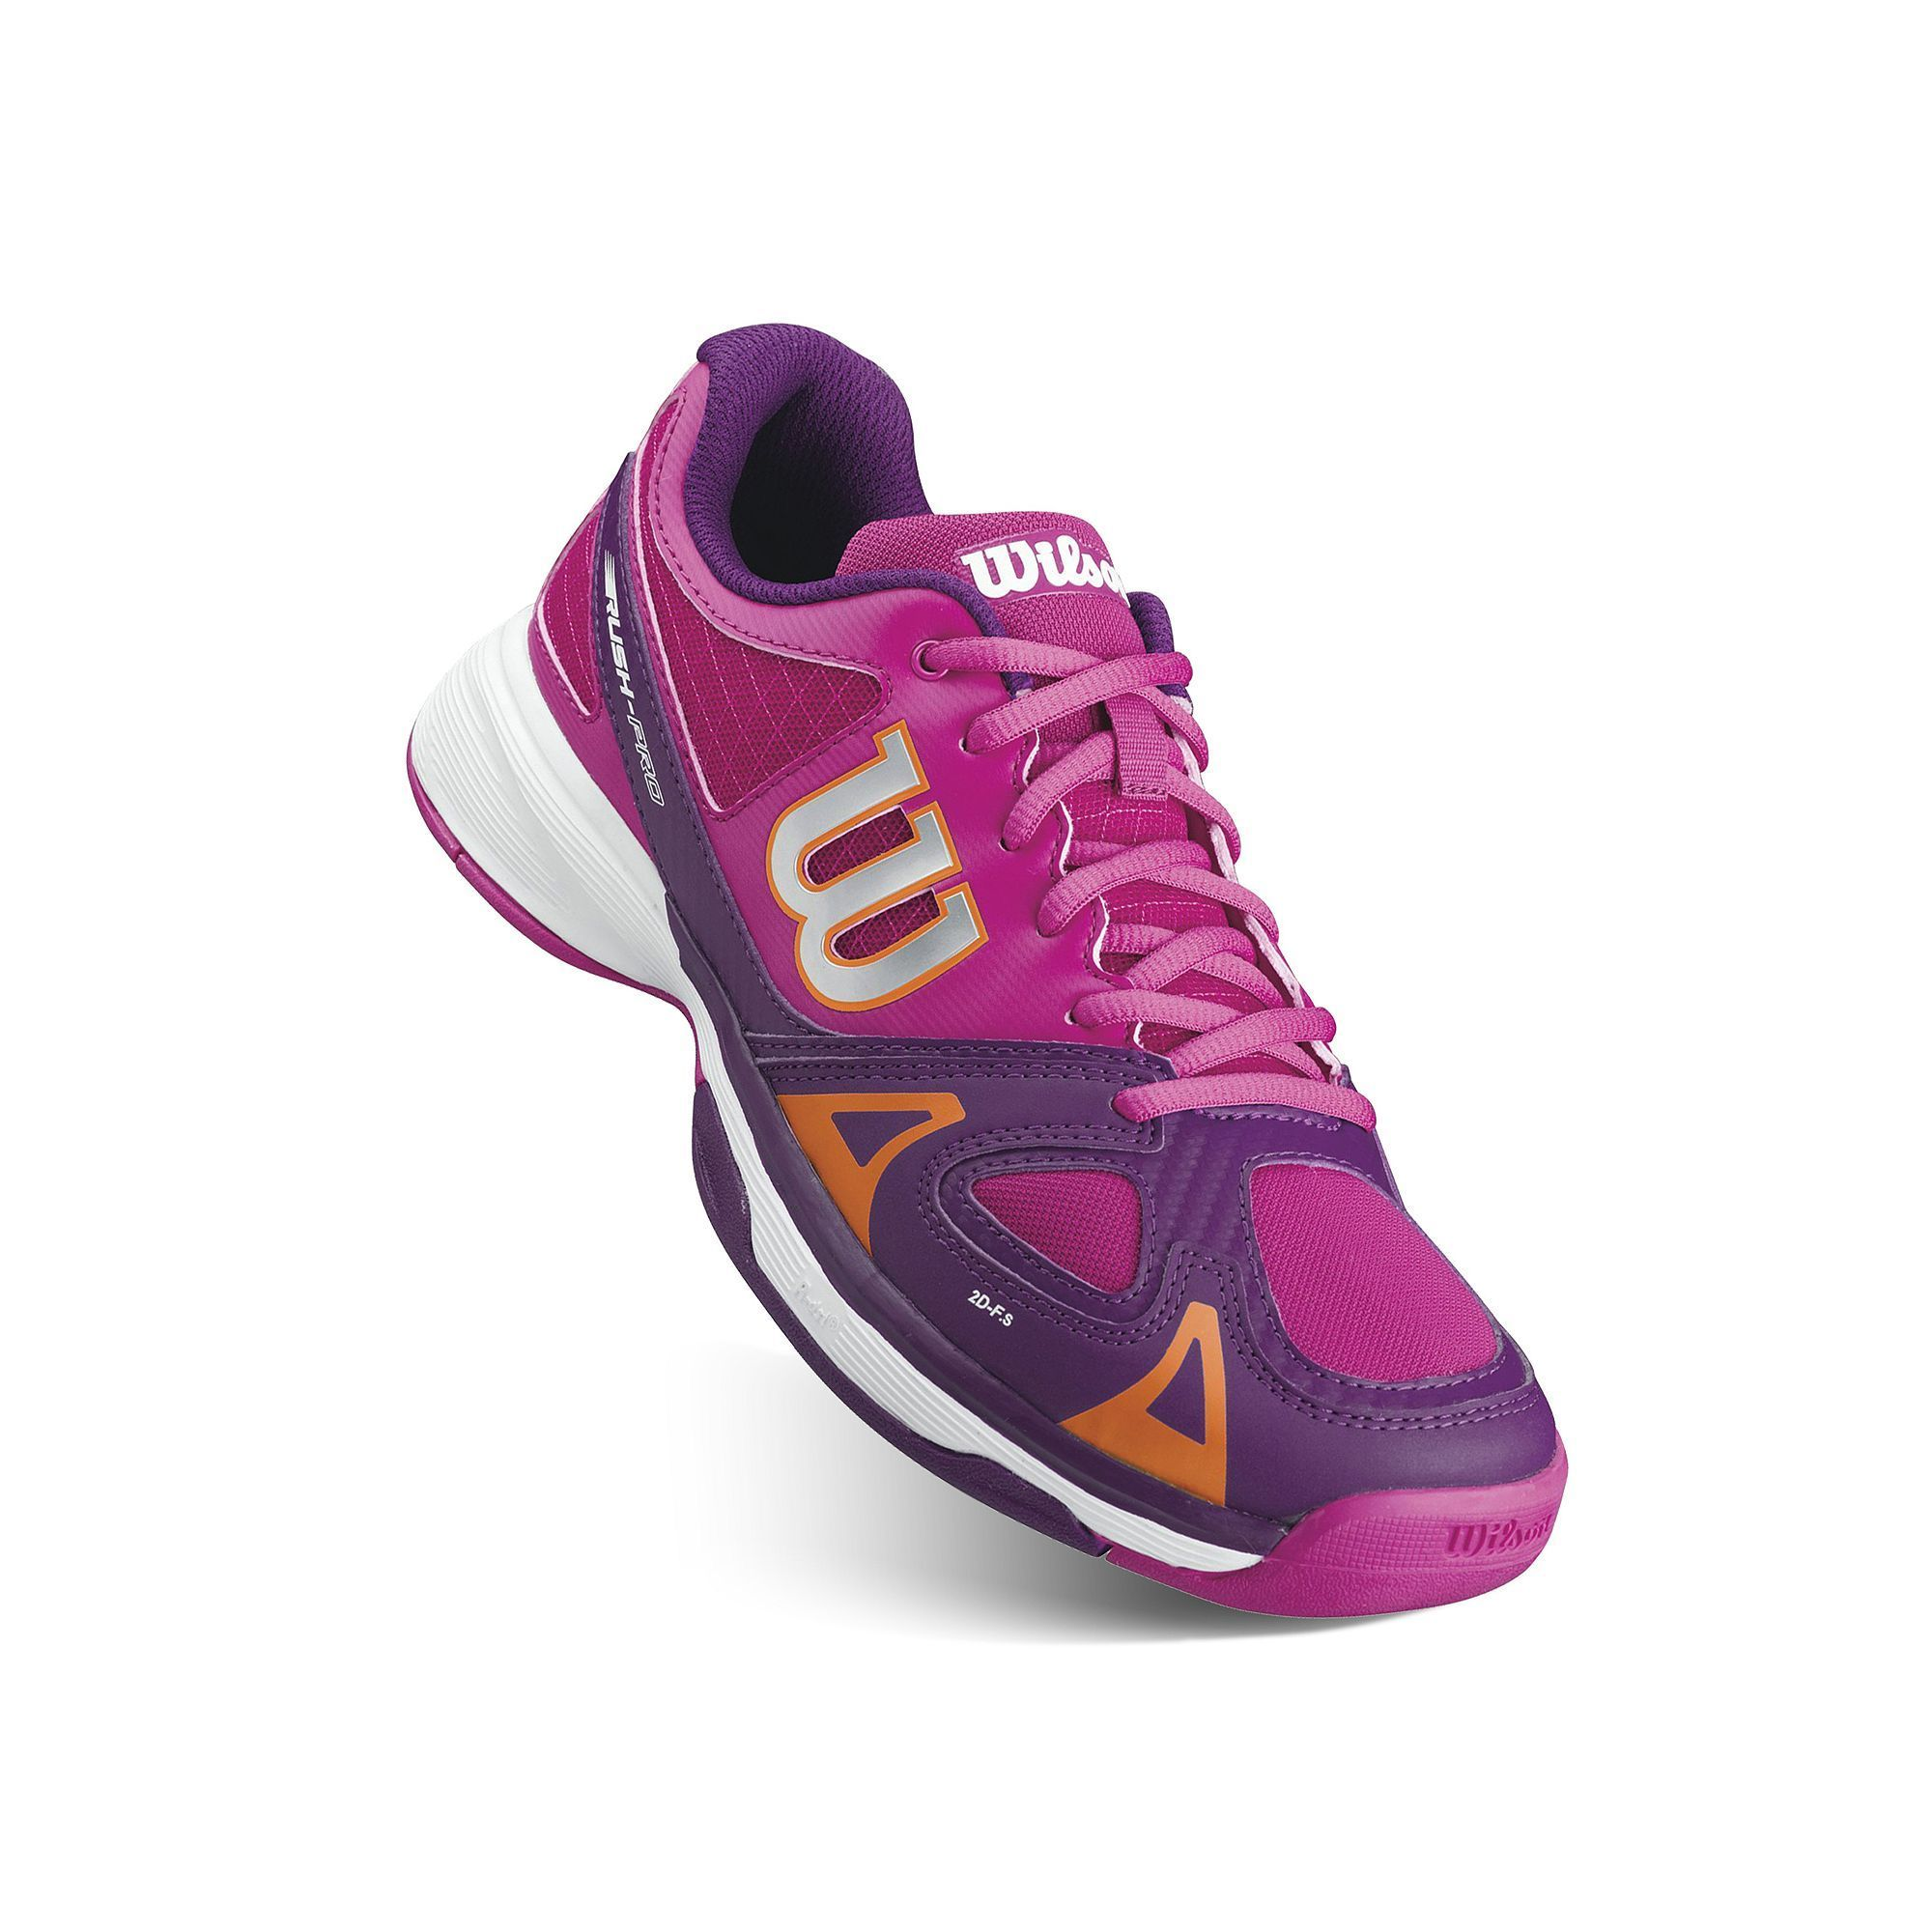 a8122 0a107 girls tennis shoes size 4 hot new products ... 316b12fd04d9